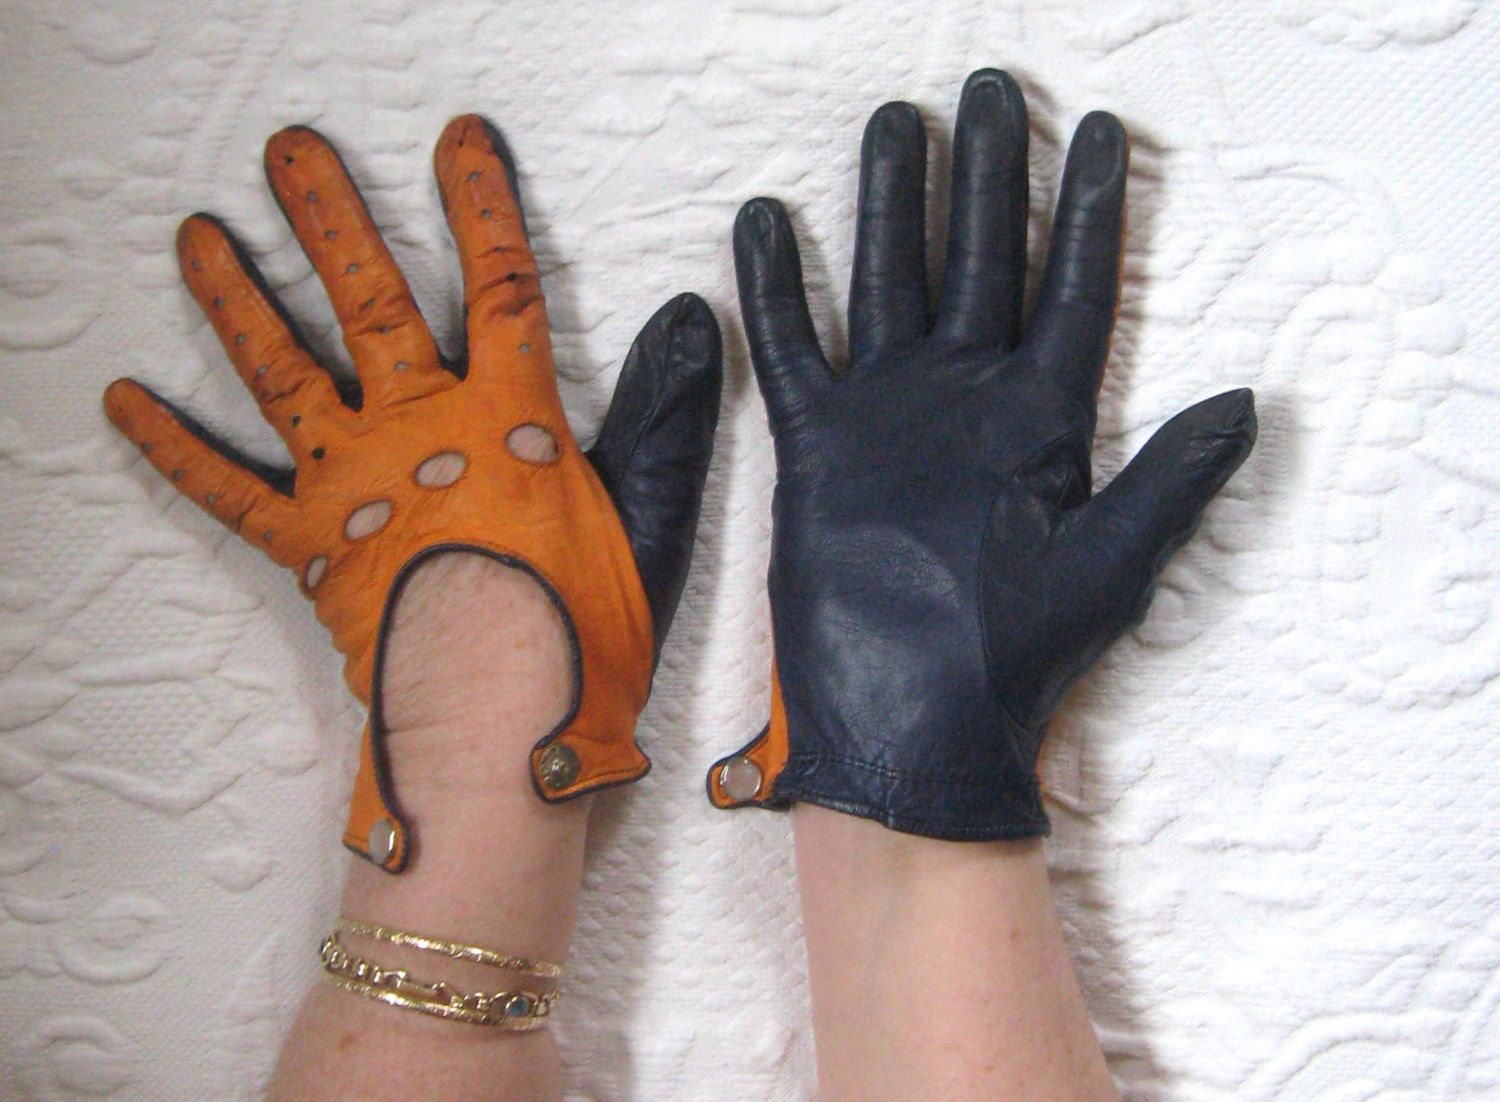 Blue leather driving gloves - Orange And Blue Kid Leather Gloves Kid Gloves Orange And Blue Driving Gloves Driving Gloves